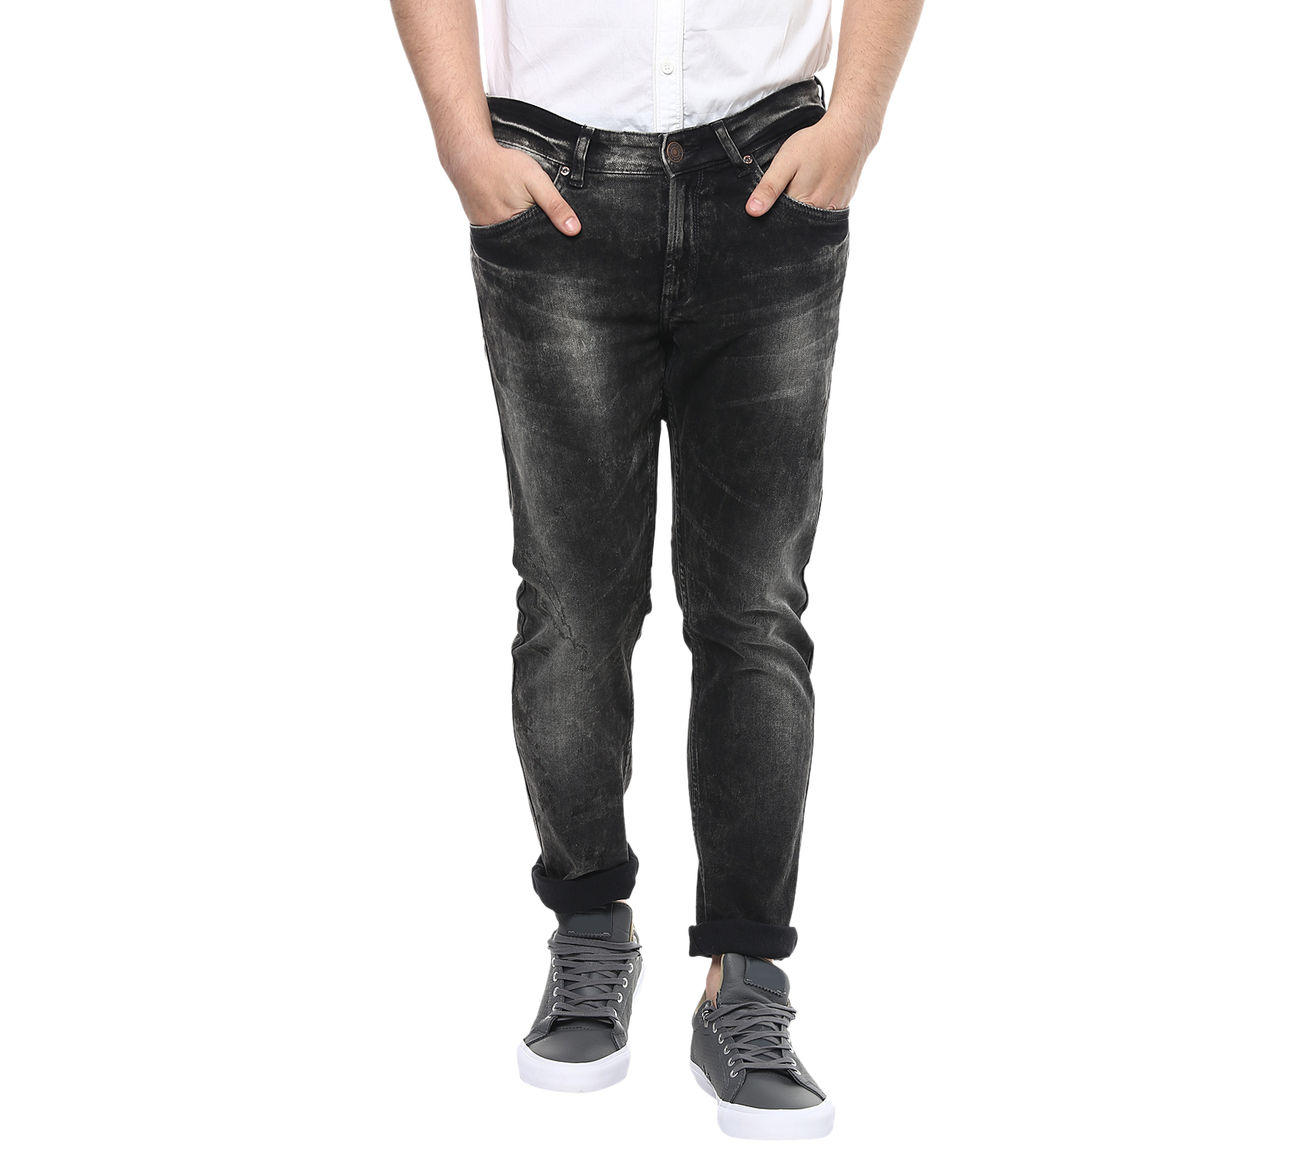 2019 year style- Rise low ultra jeans men photo